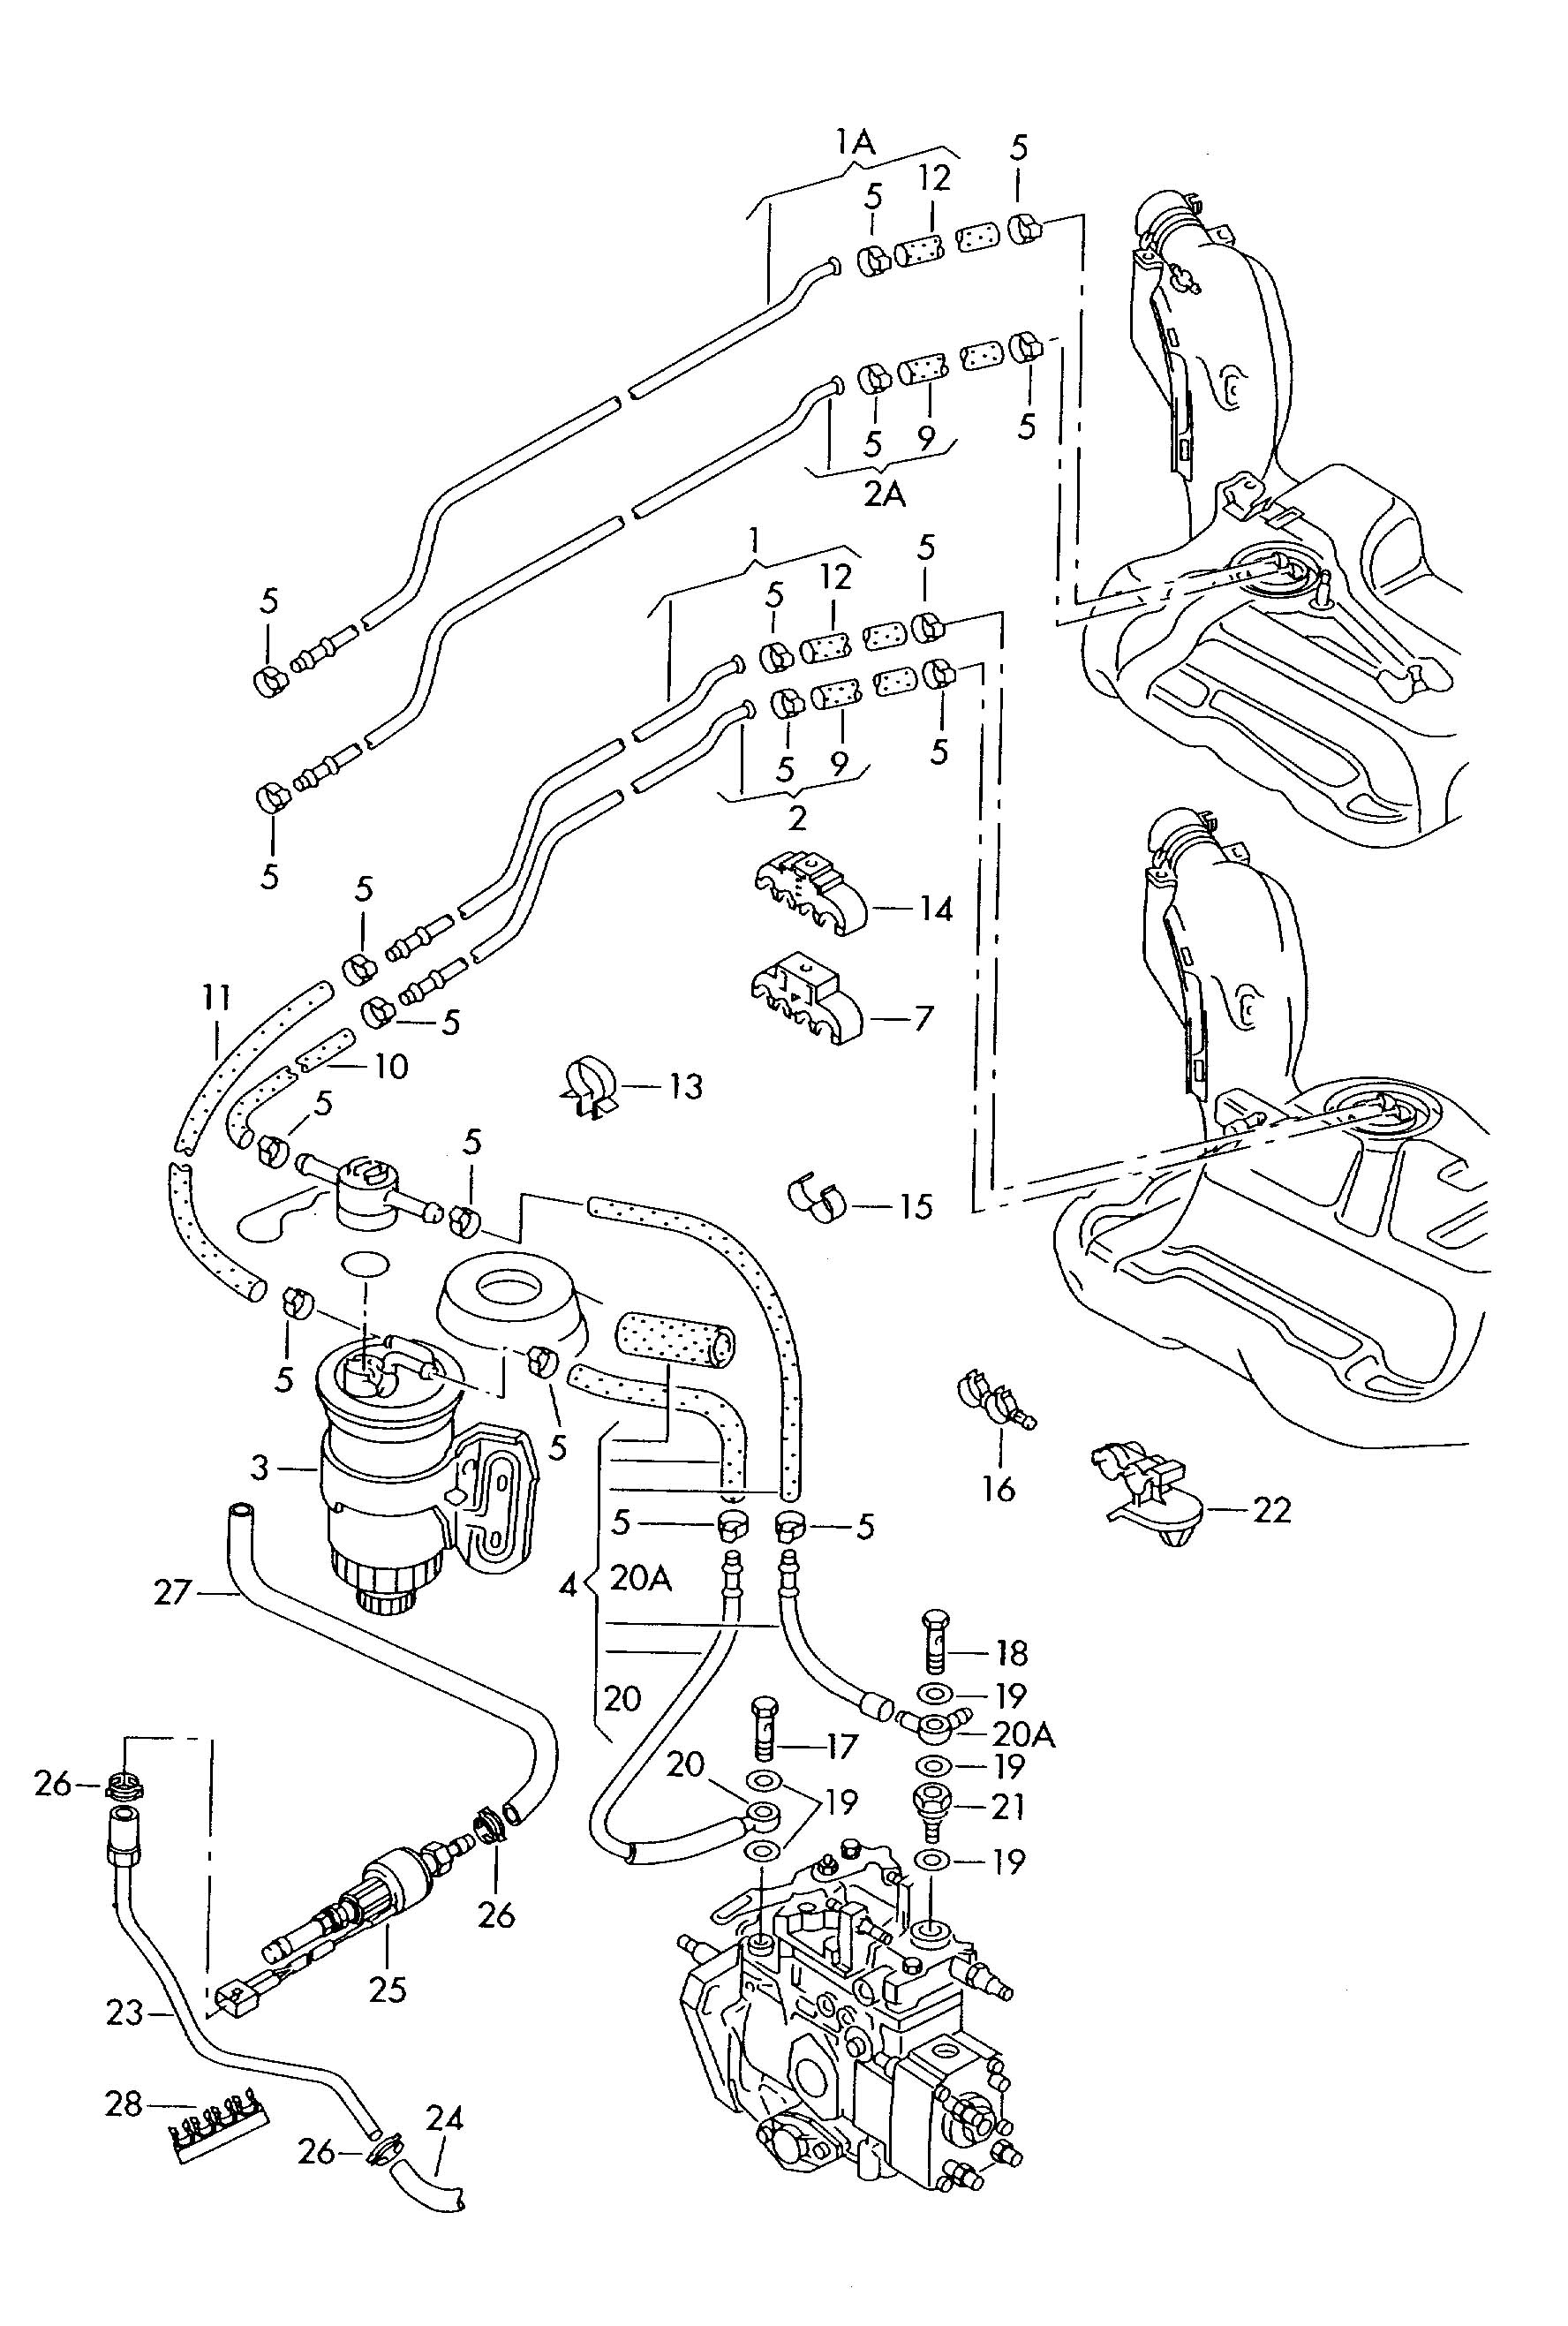 2002 vw passat vacuum hose diagram horse respiratory system parts fuel lines free engine image for user manual